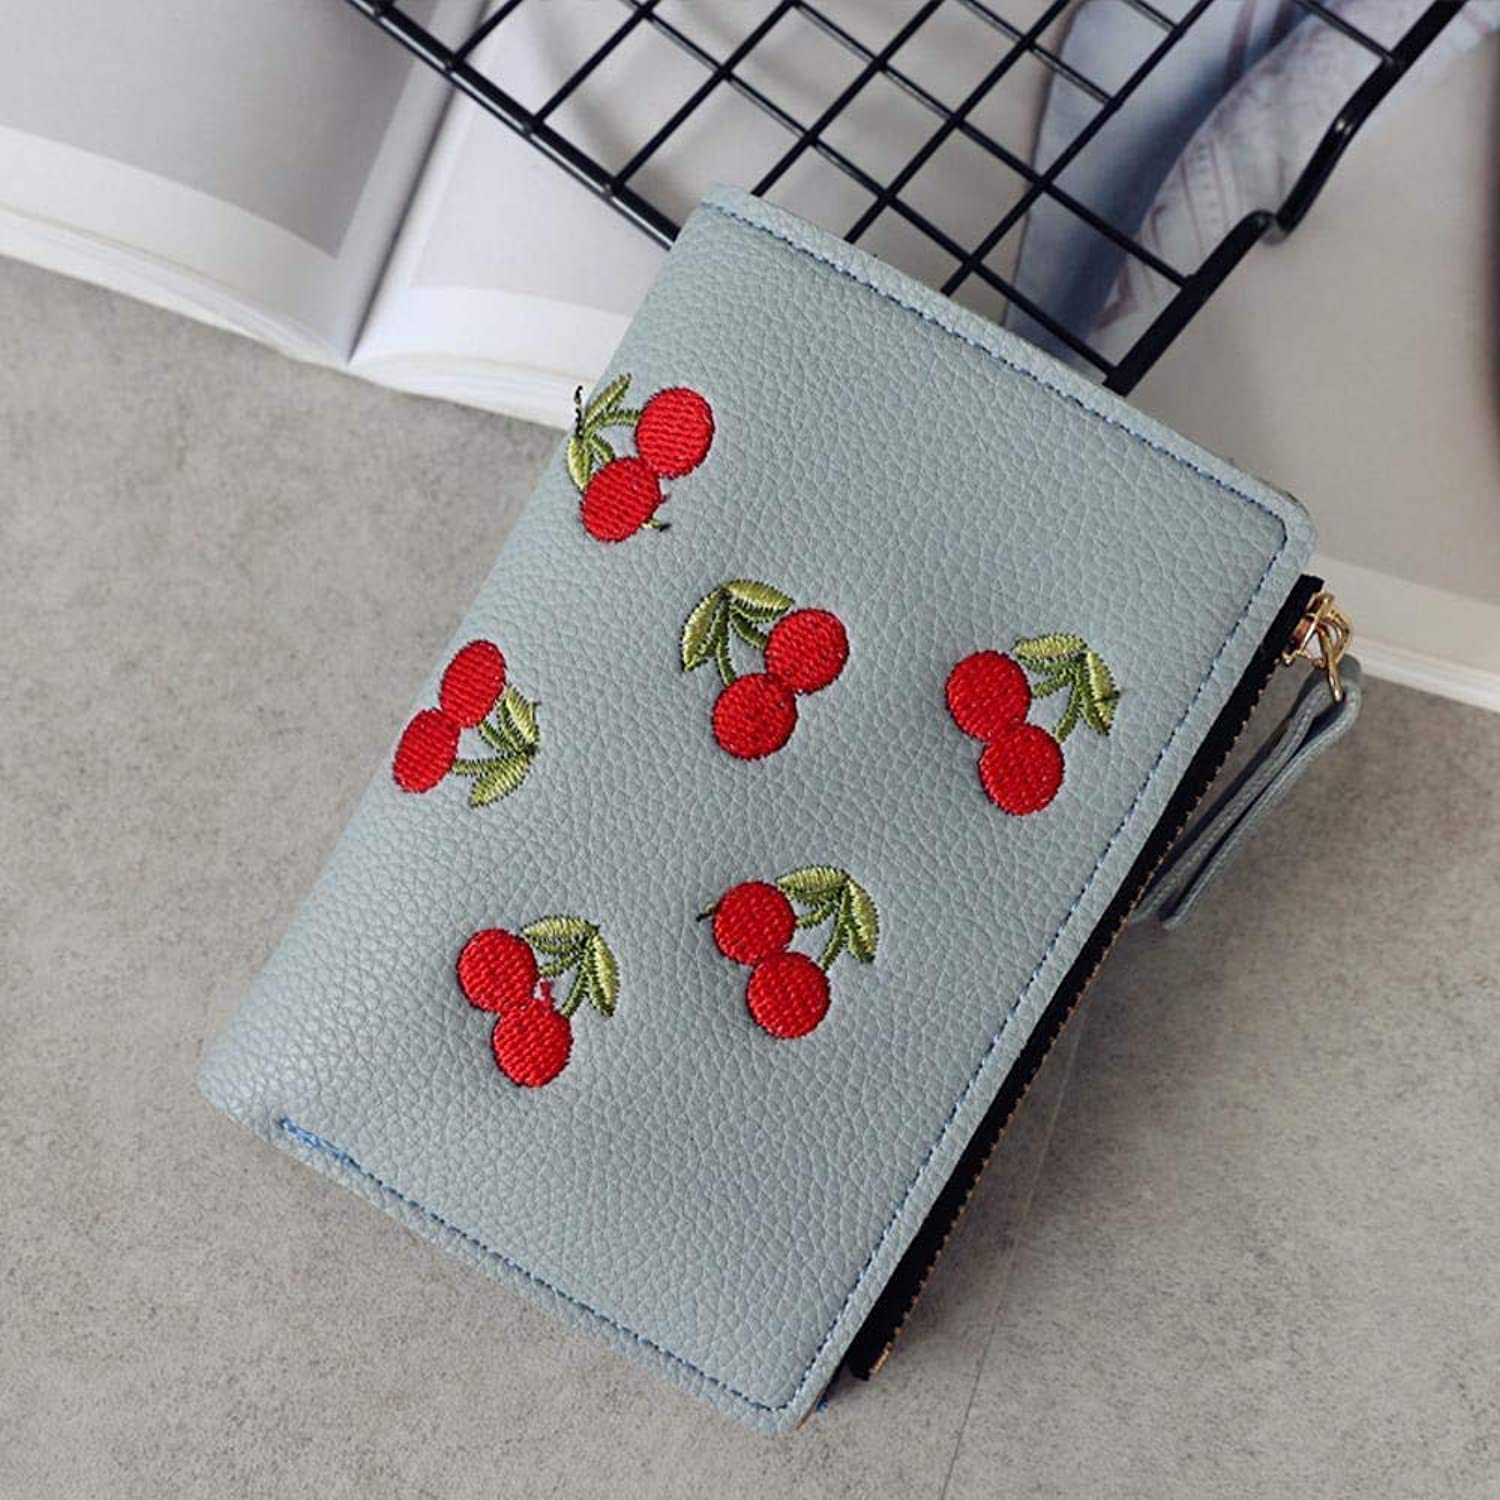 Girls Purse Women's Buckle Embroidery Short Small Clip Student Simple Fashion Wallet 9.5  12.5  3cm (color   F)